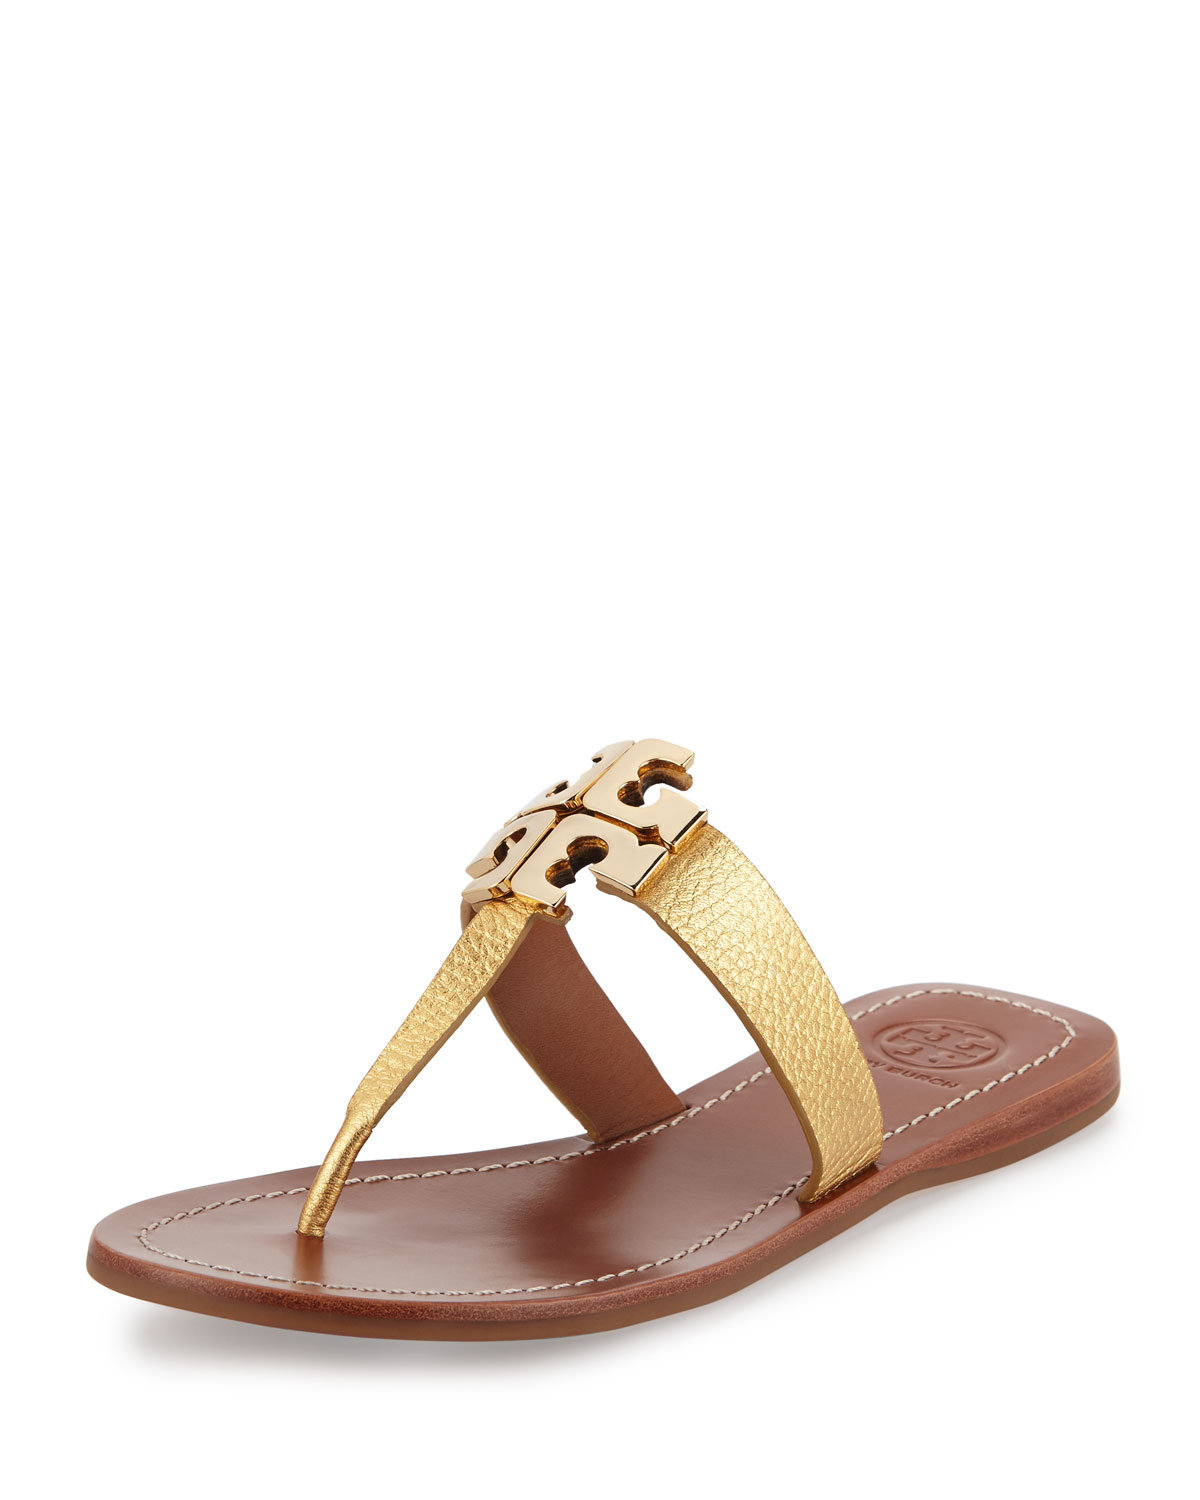 Tory Burch Moore 2 Flat Leather Thong Sandal In Metallic